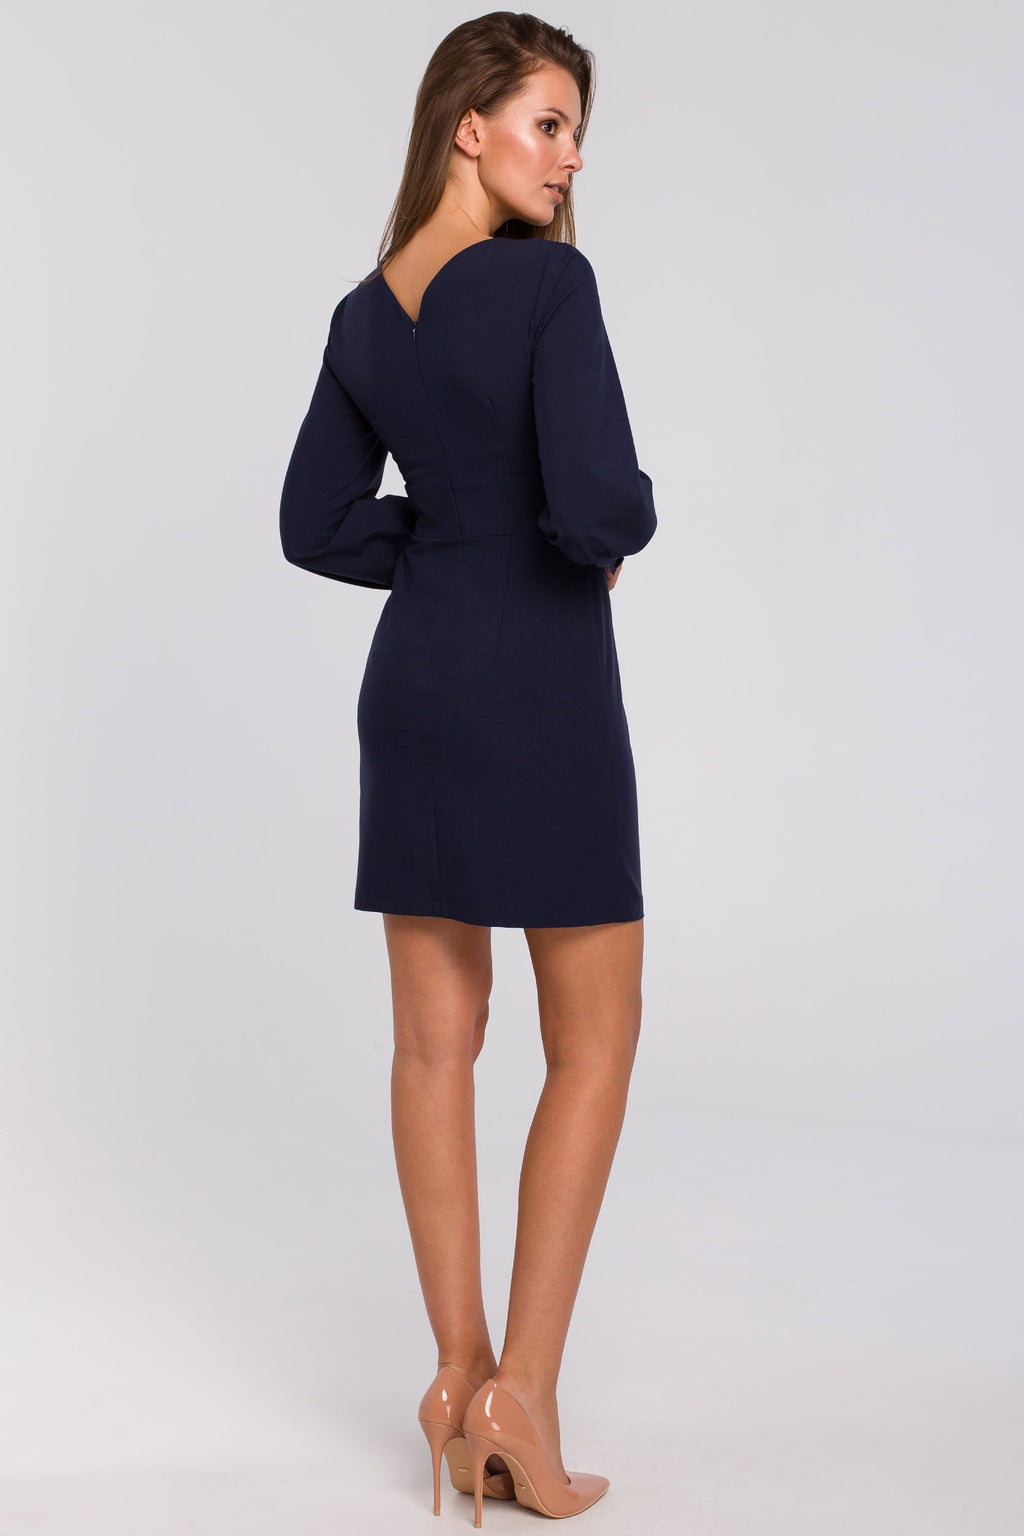 Mini Navy Blue Dress With Puff Long Sleeves - So Chic Boutique